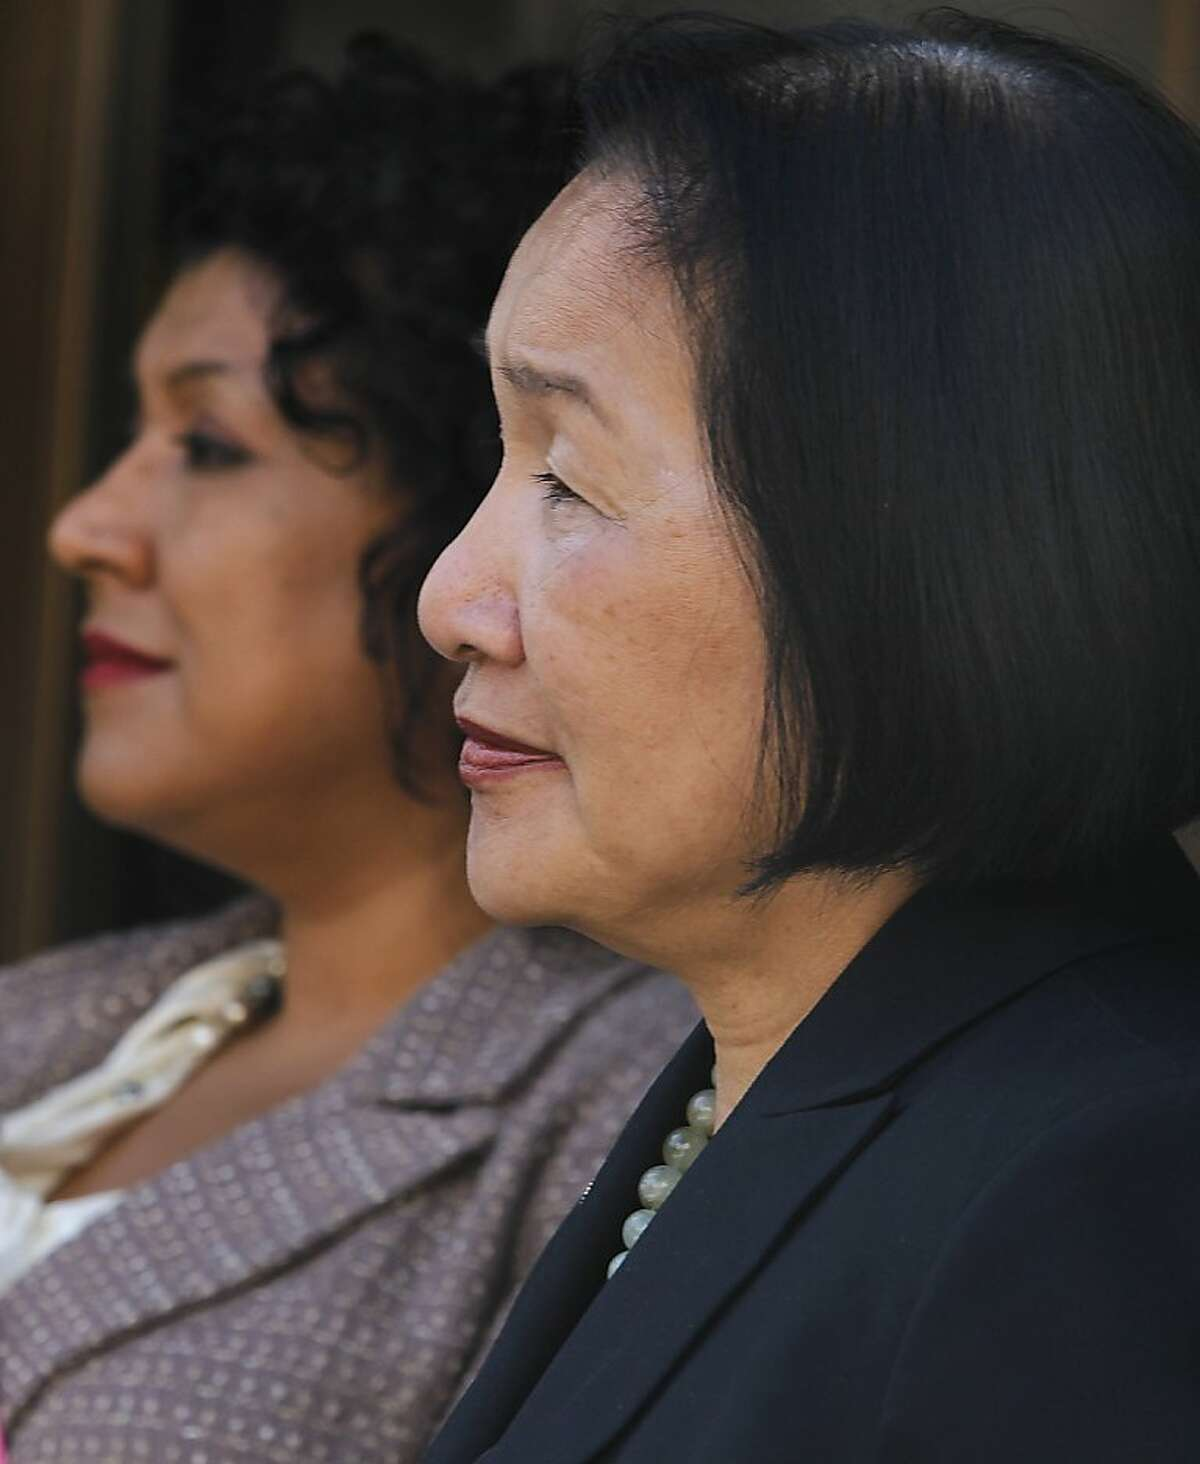 Oakland mayor Jean Quan appears at a news conference with city administrator Deanna Santana (left) to tout downtown Oakland's revitalization at a news conference on the steps of City Hall in Oakland, Calif. on Wednesday, Oct. 24, 2012. Thursday marks the one-year anniversary of the Occupy Oakland movement.